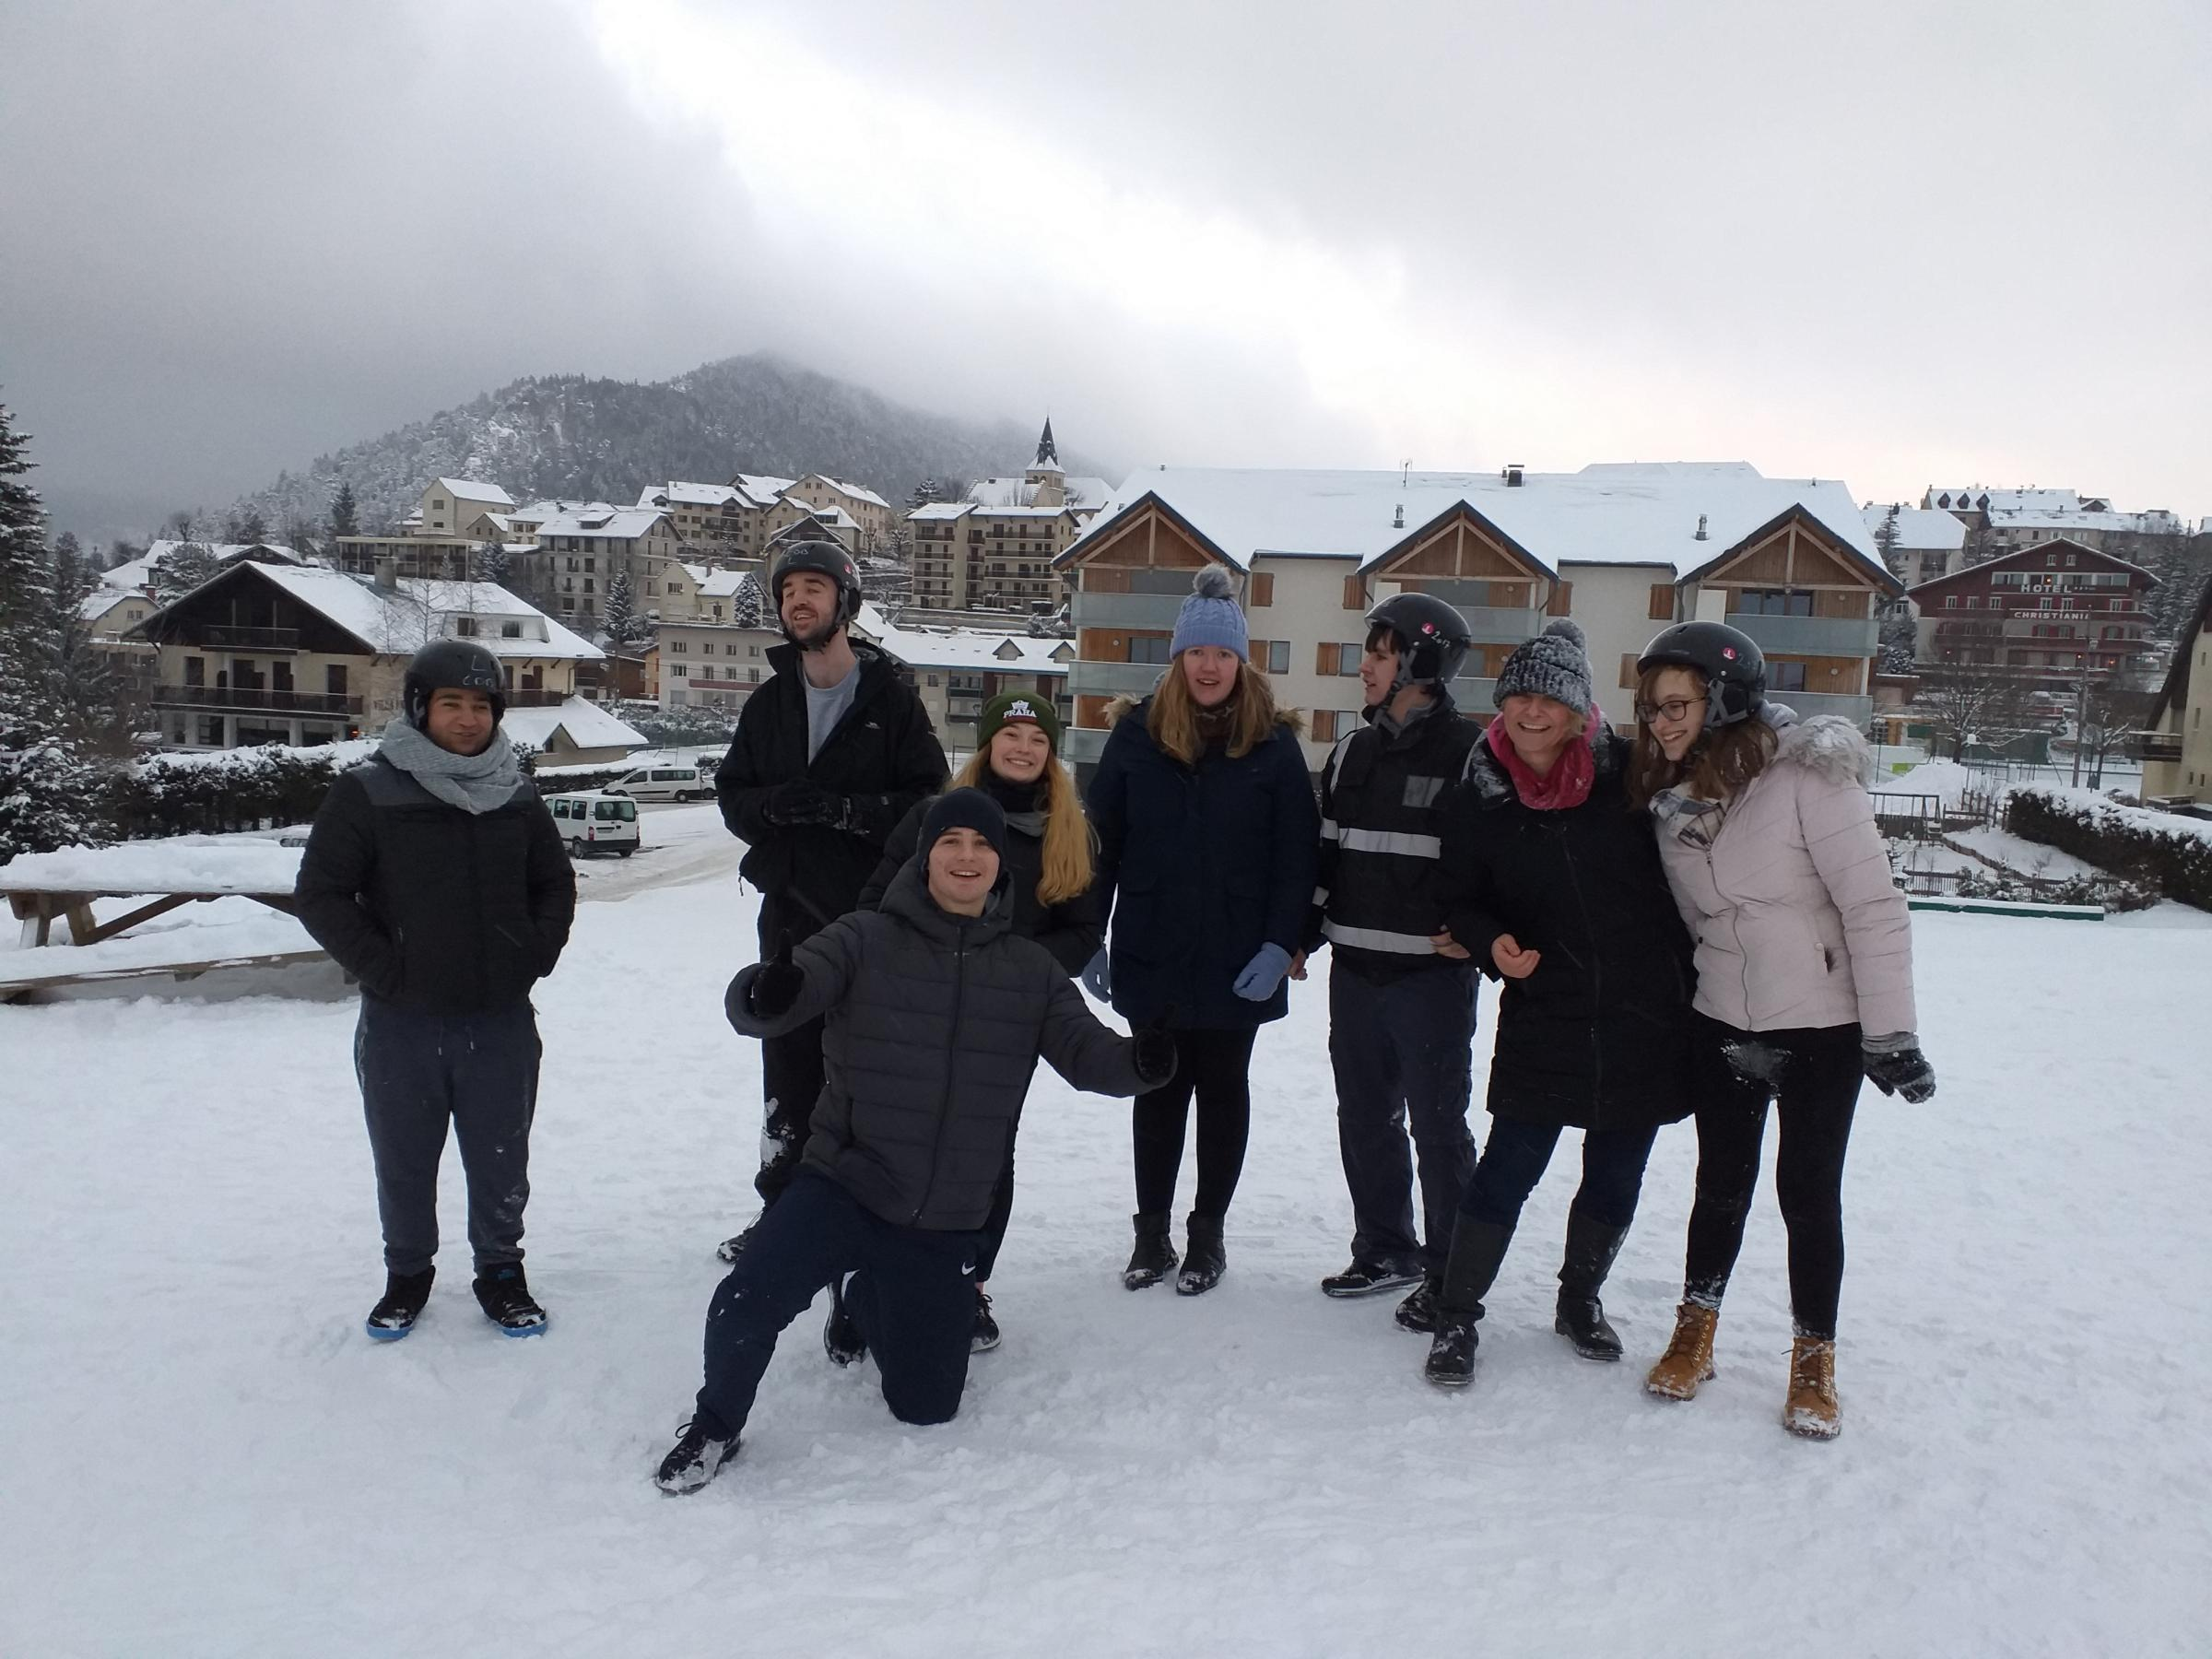 Royal National College for the Blind students and staff member in Villard De lans in the French alps. From left: Nathan Bouzidi, Robert Cummings, Heather Hughes (French partner college work placement student from Liverpool), Tom Bendall (outreach and even